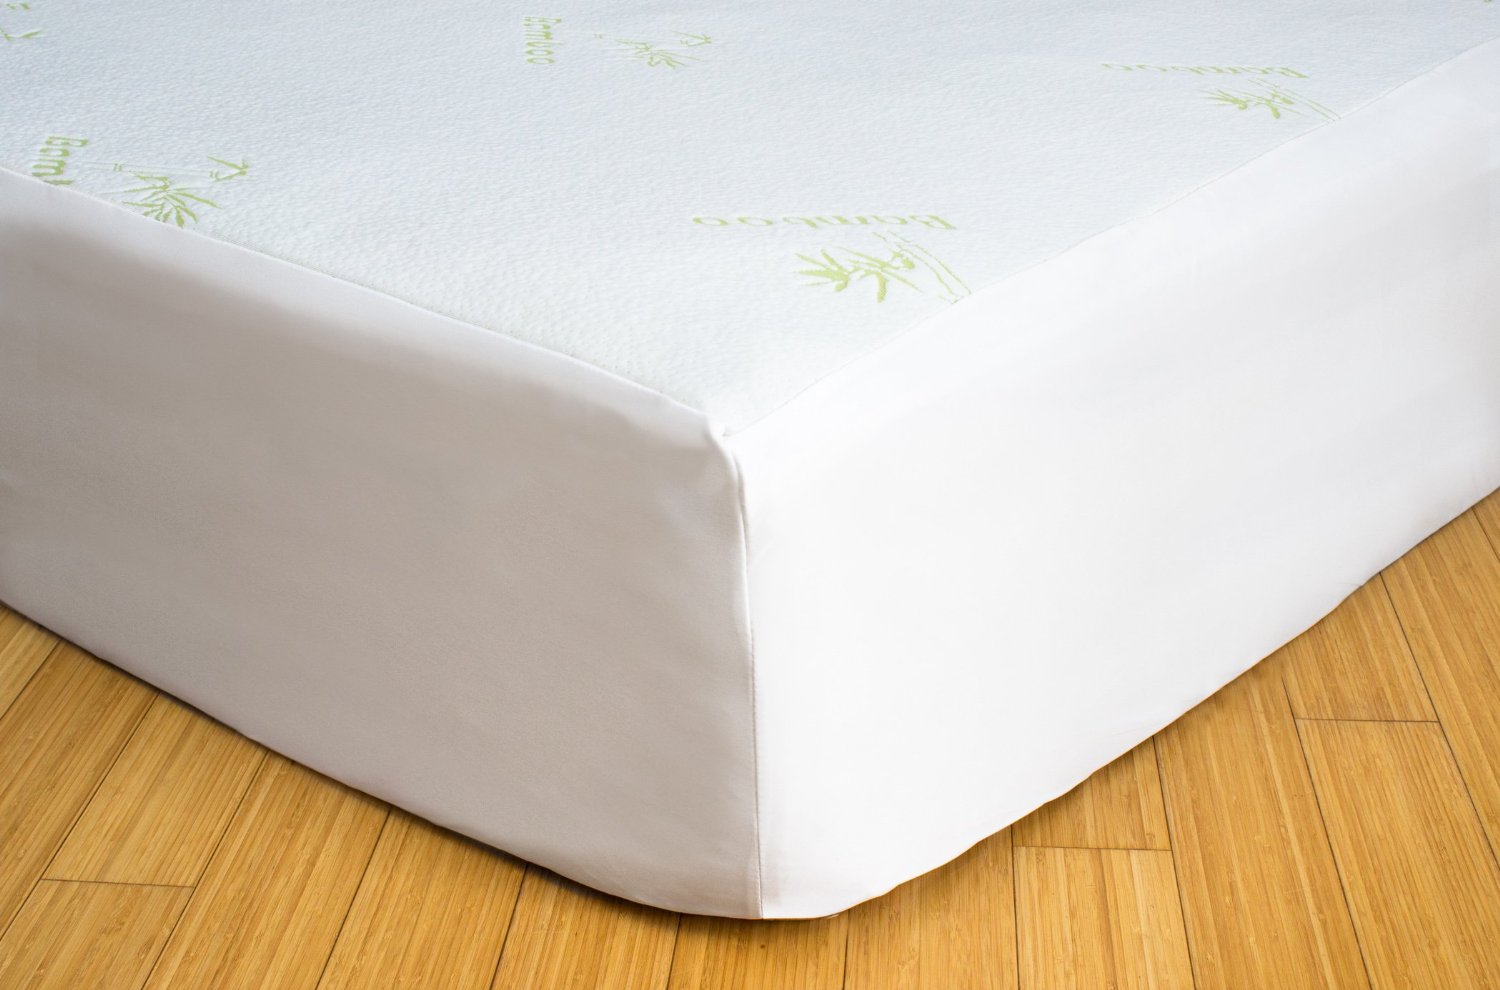 logotype hc better white comforter comfort live sleep hotel sheets bamboo